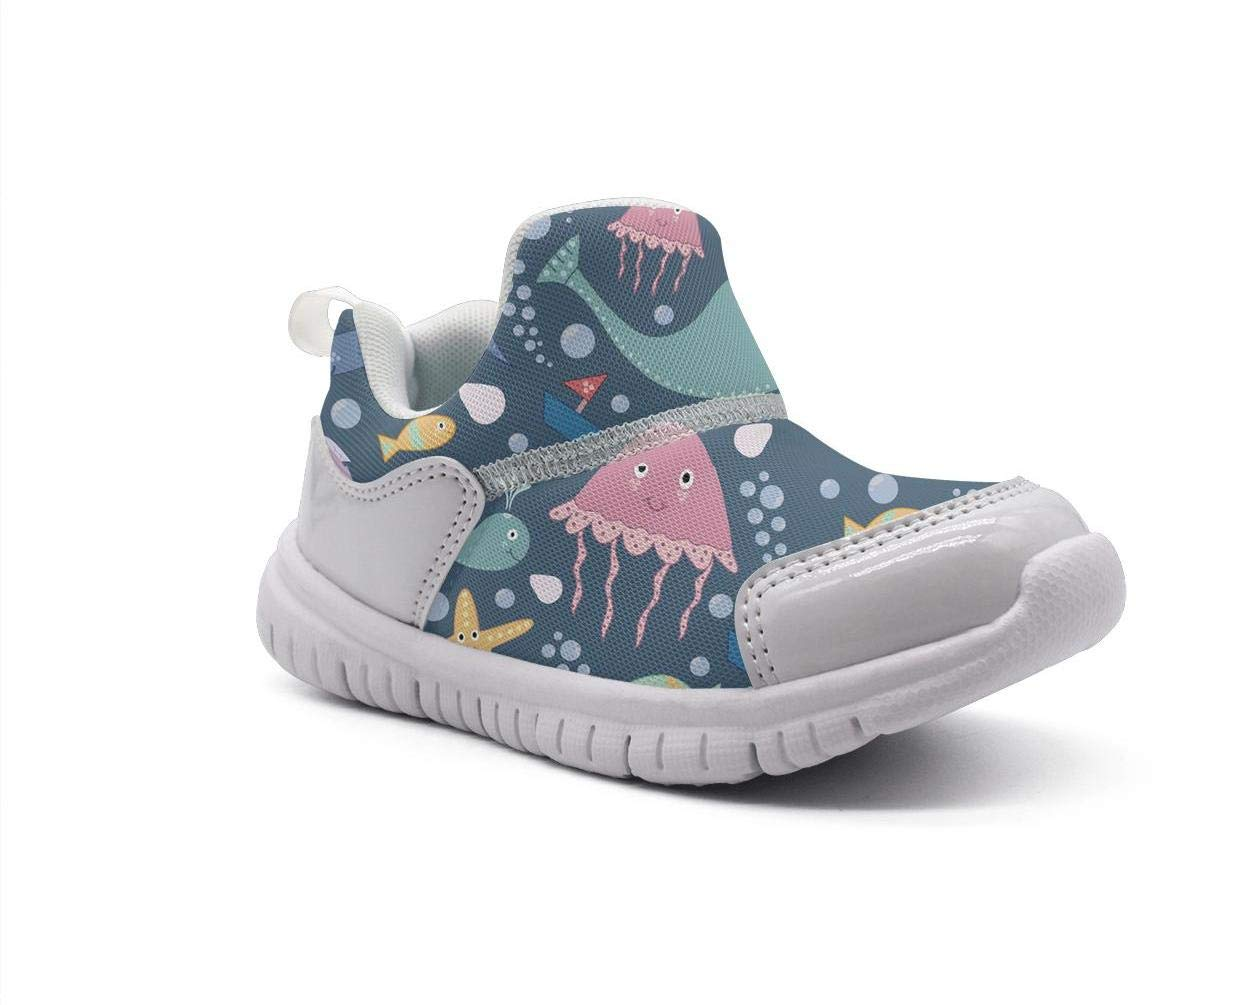 ONEYUAN Children Sharks Whale Jellyfish Kid Casual Lightweight Sport Shoes Sneakers Running Shoes